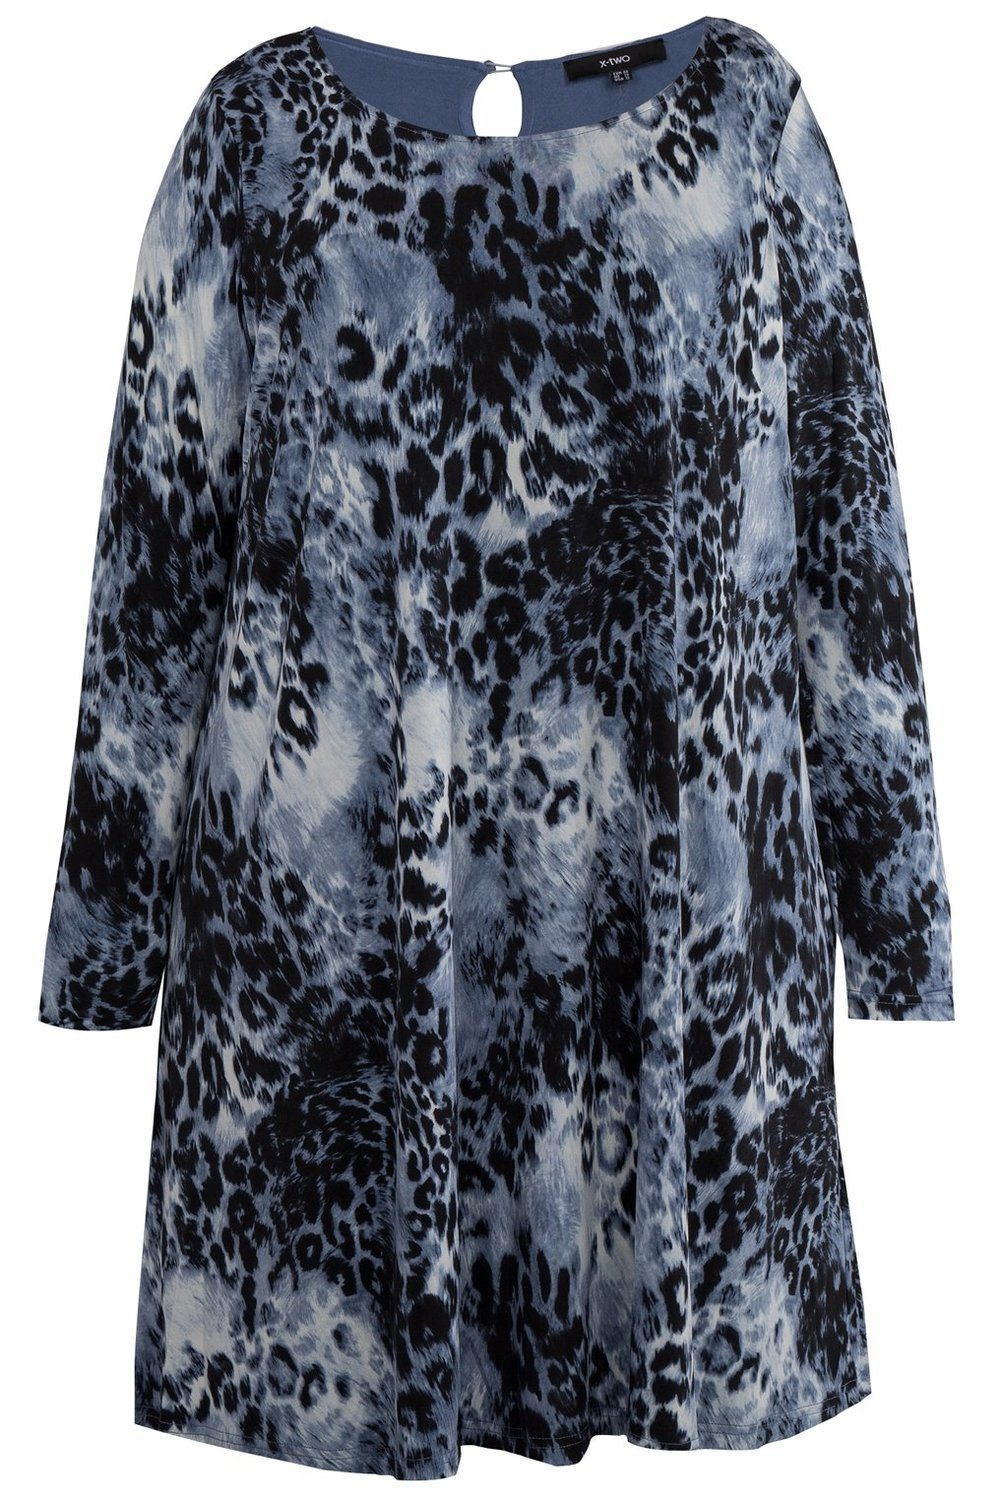 Jurk dieren print Fien X-two blue/multi-colour